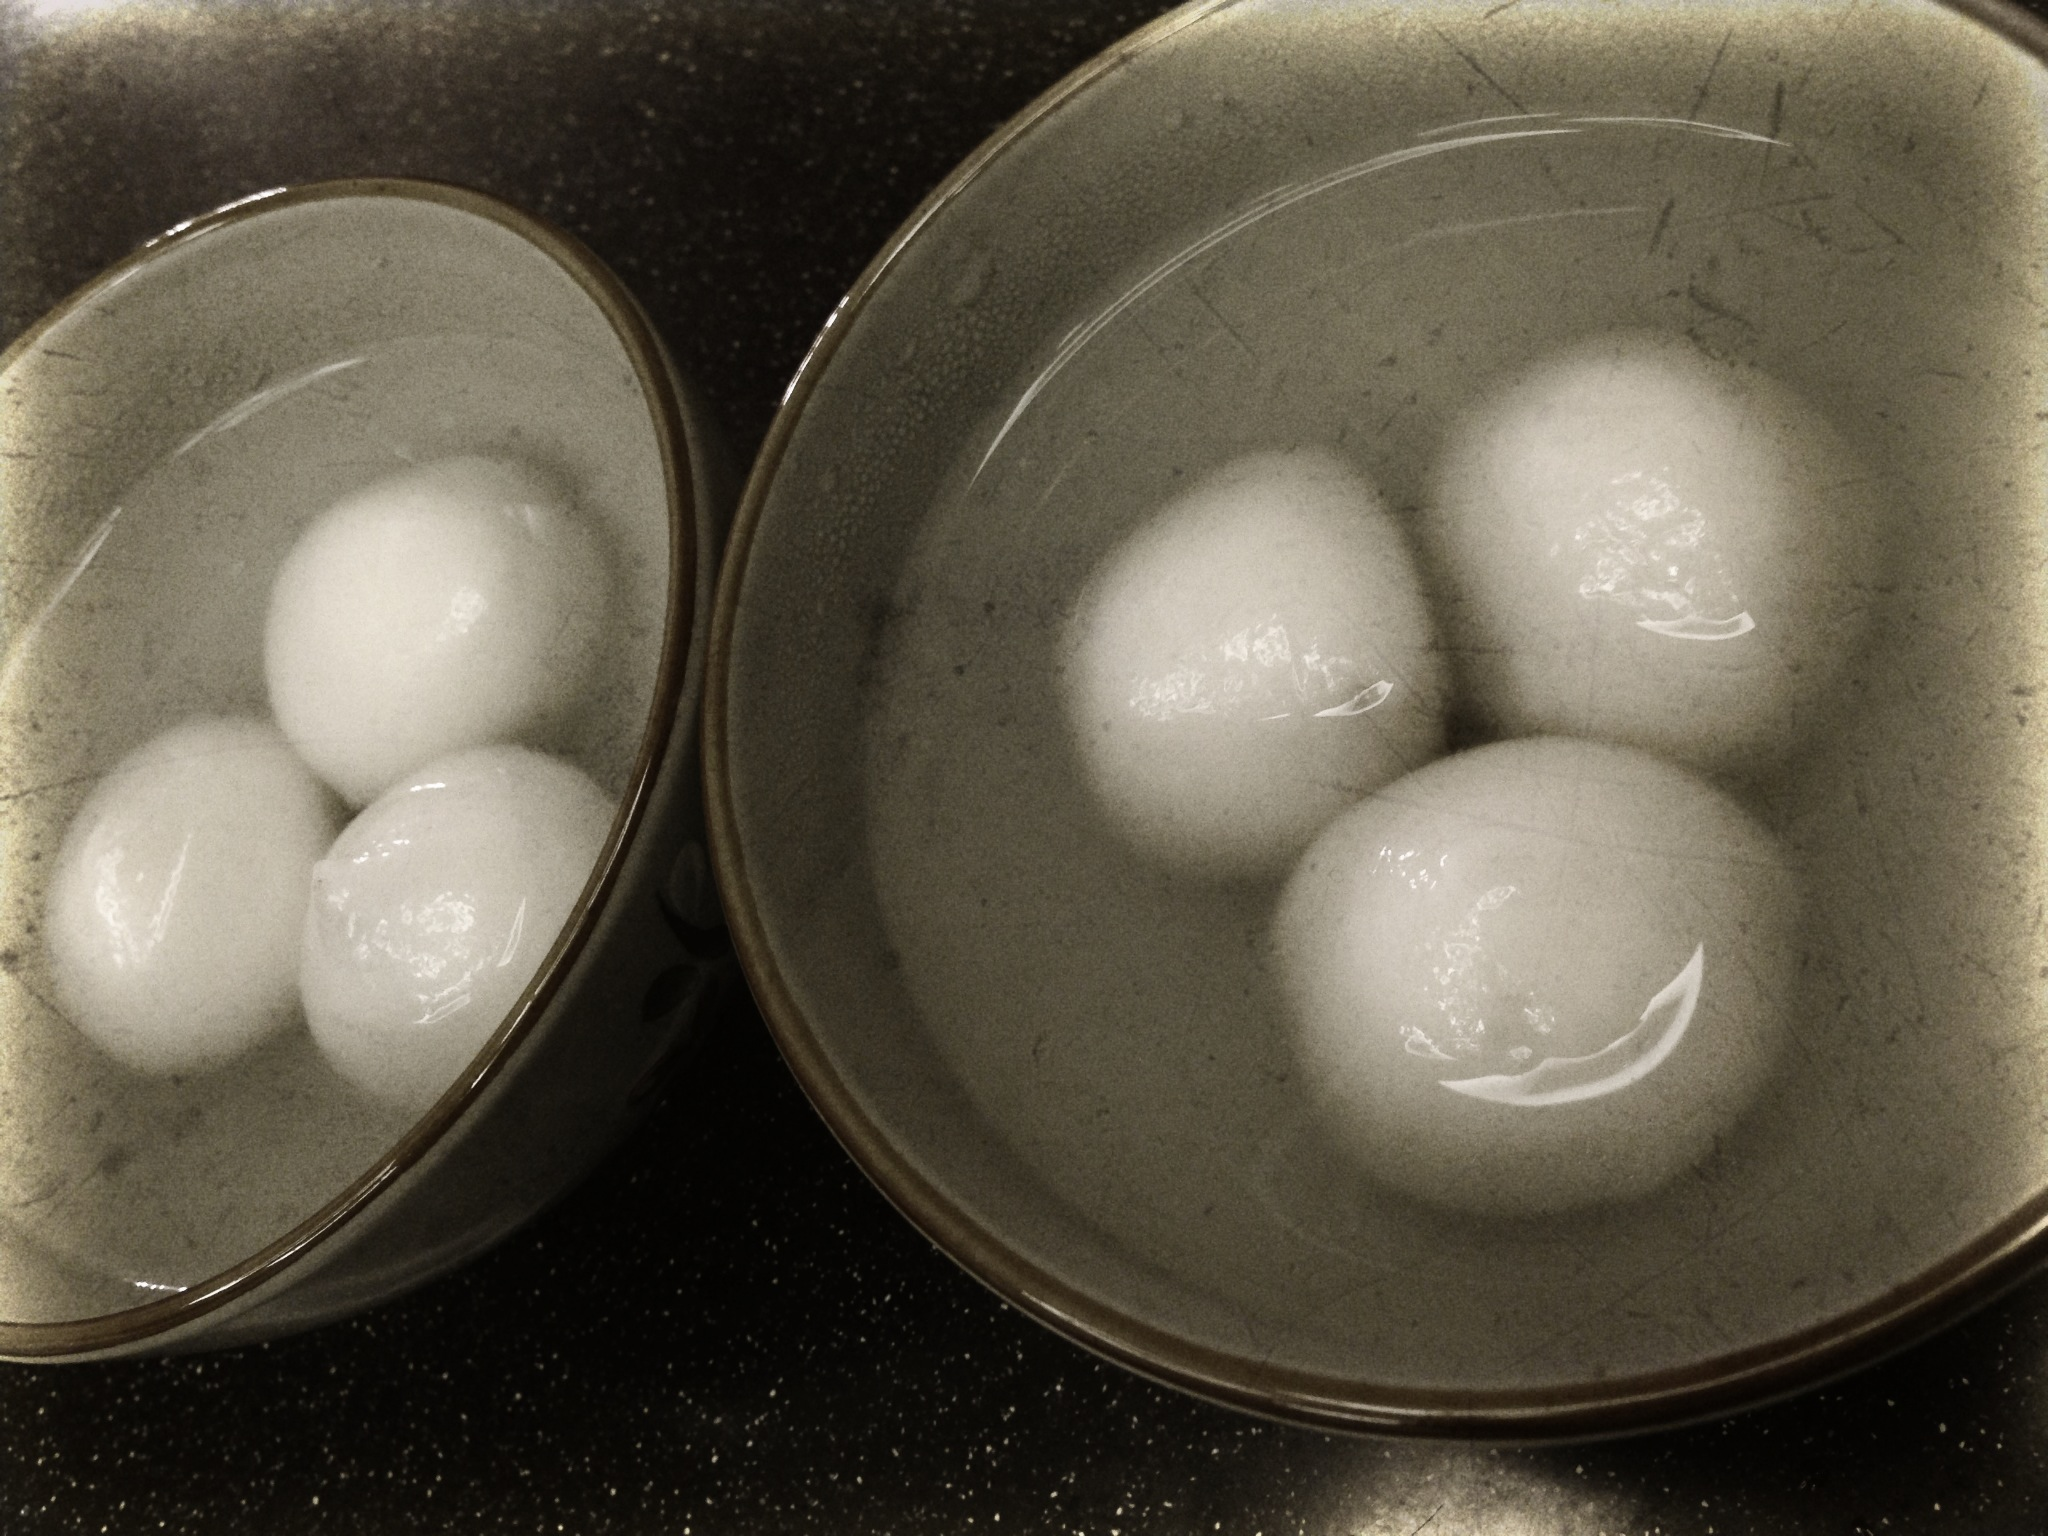 Chinese New Year Recipe: Tangyuan (Glutinous Rice Balls